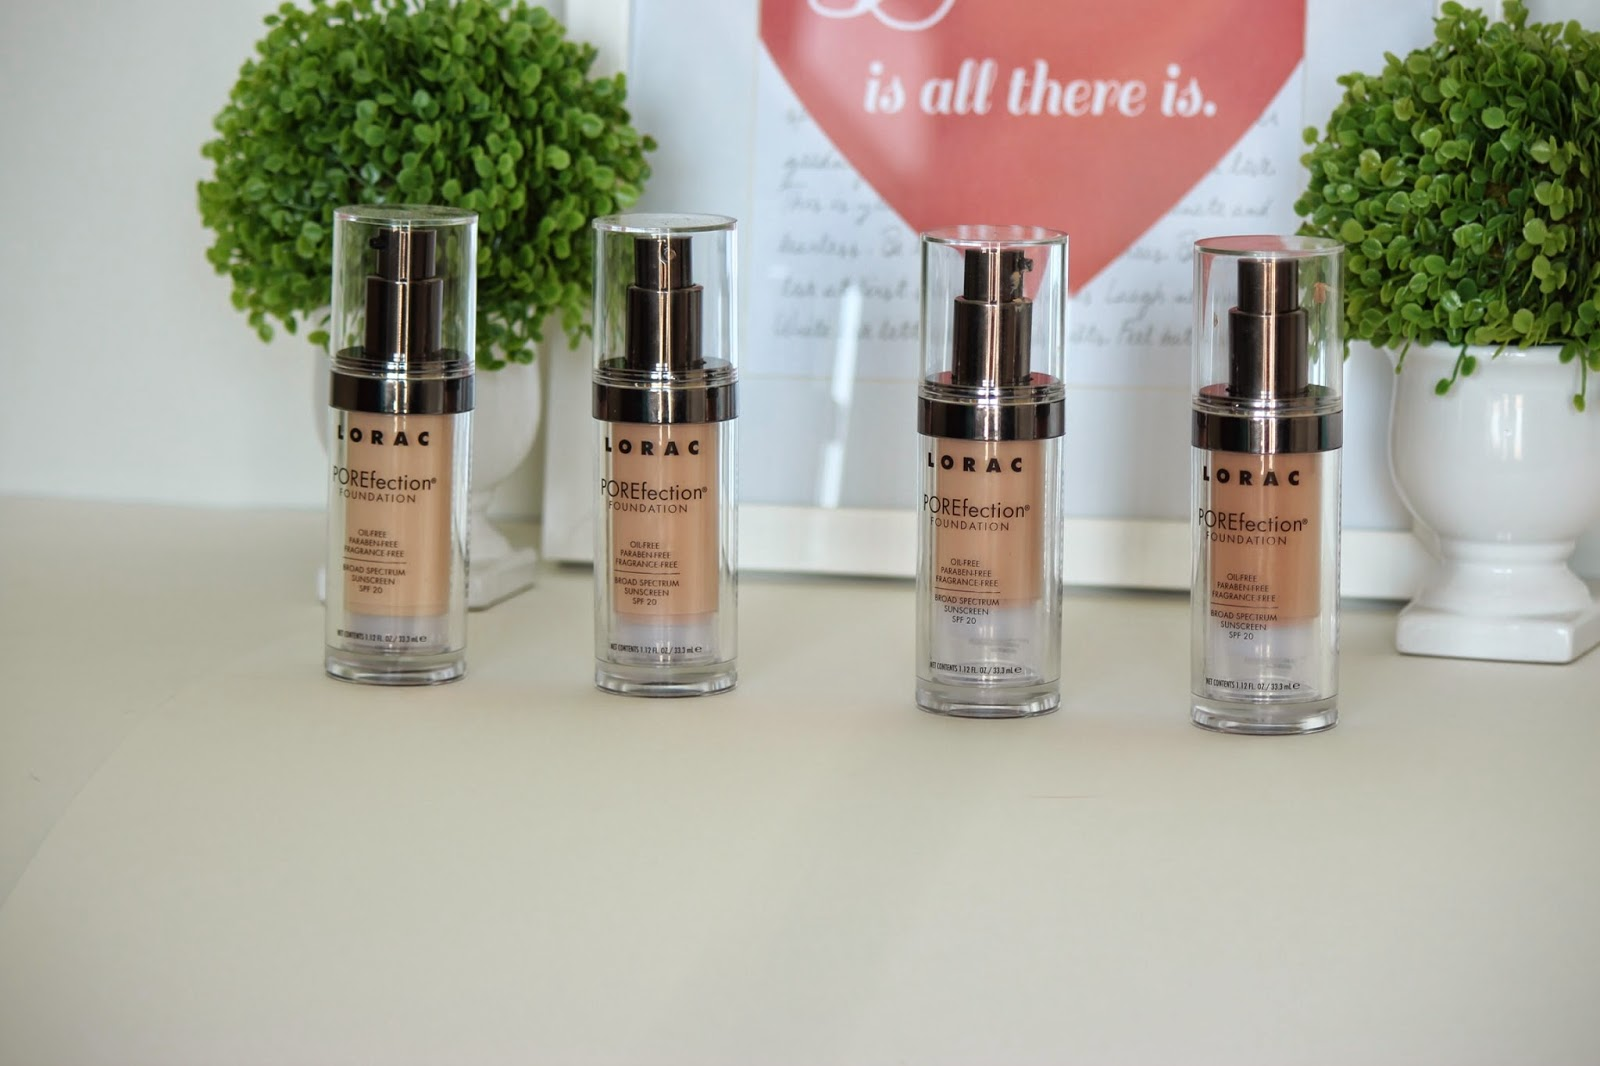 LORAC POREfection foundation, POREfection foundation review, lorac foundation review